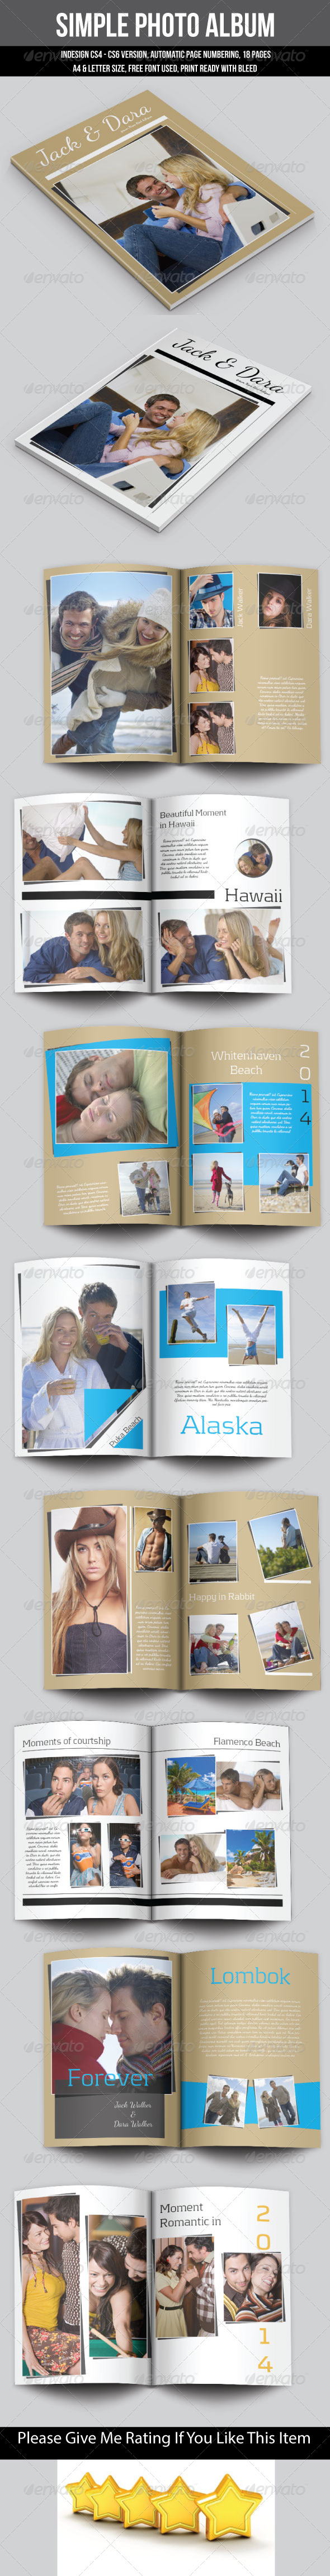 GraphicRiver Simple Photo Album 6744021